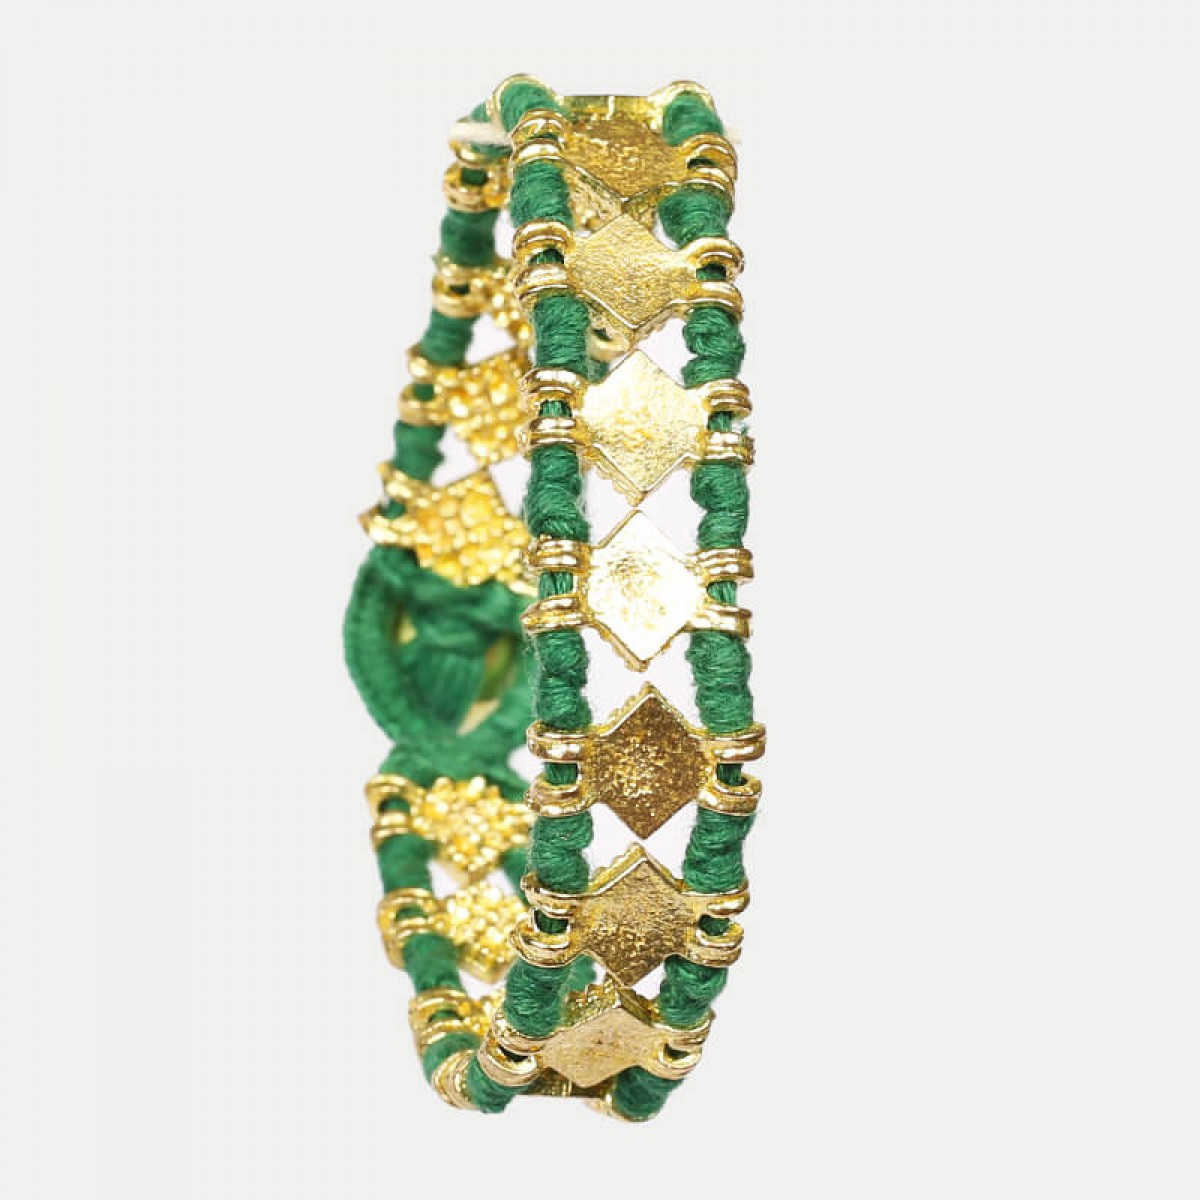 Bohemian Fashion Bracelet - Green